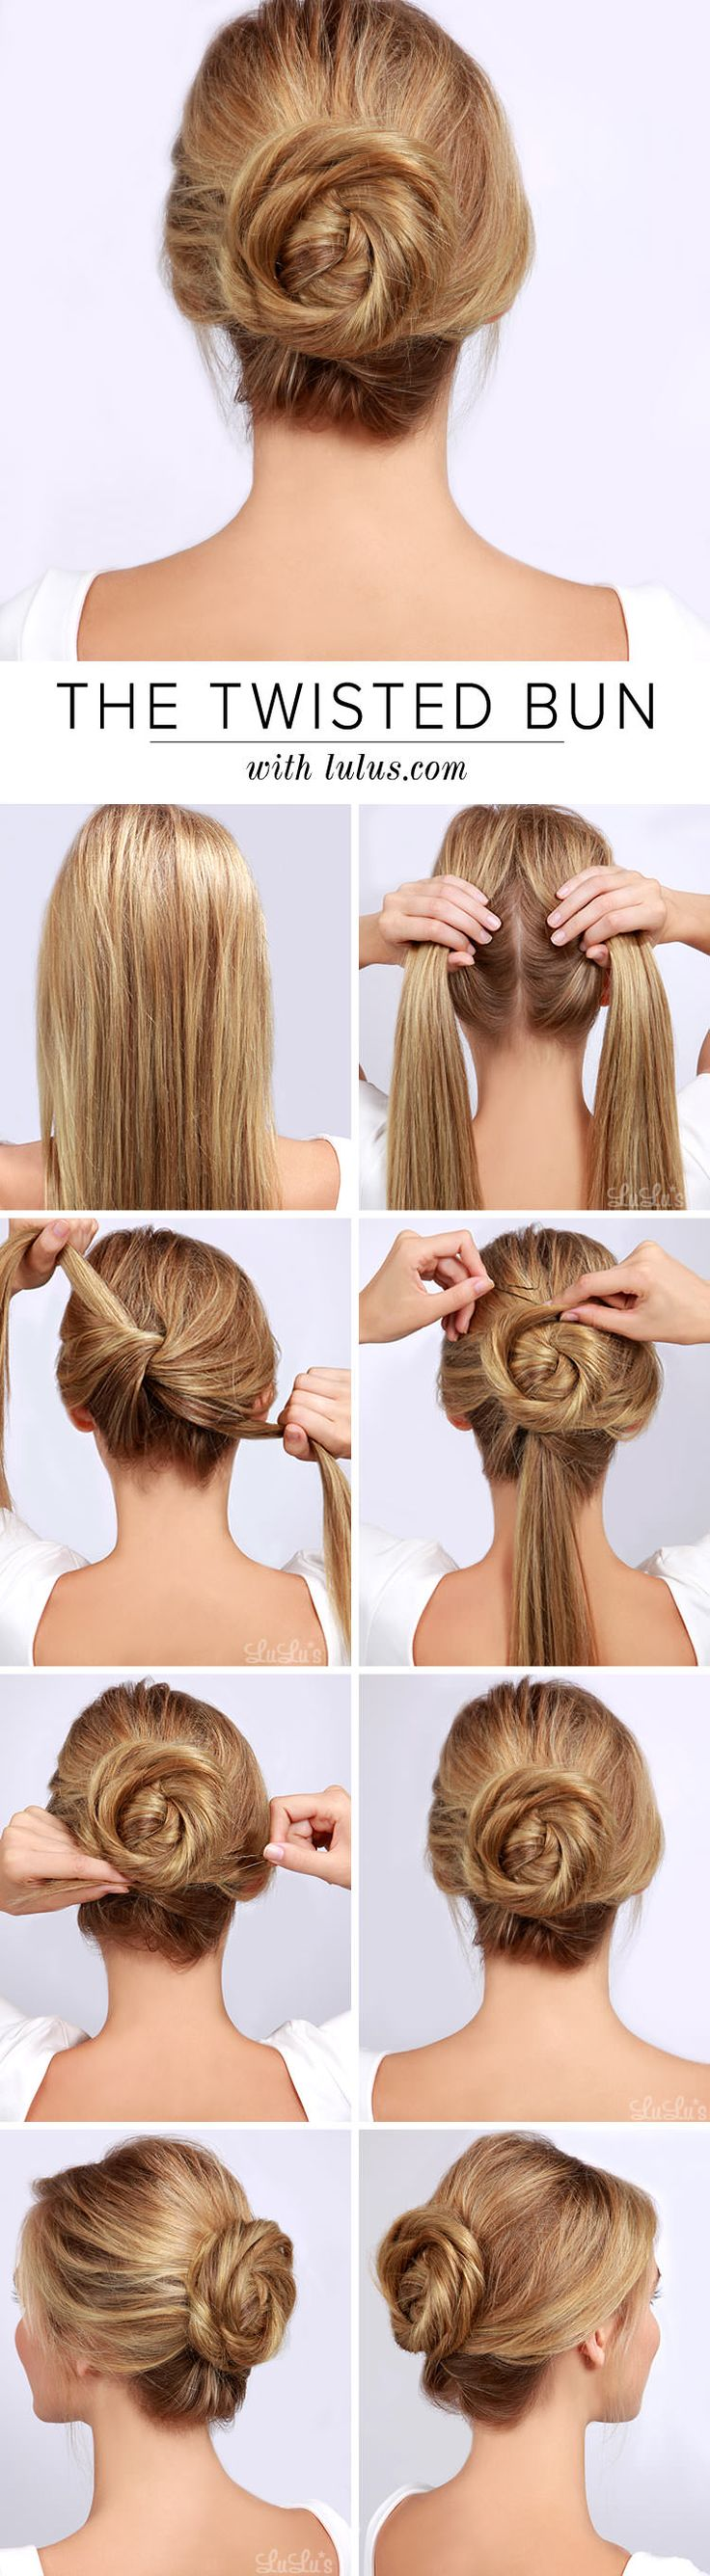 417 best Hair styles images on Pinterest